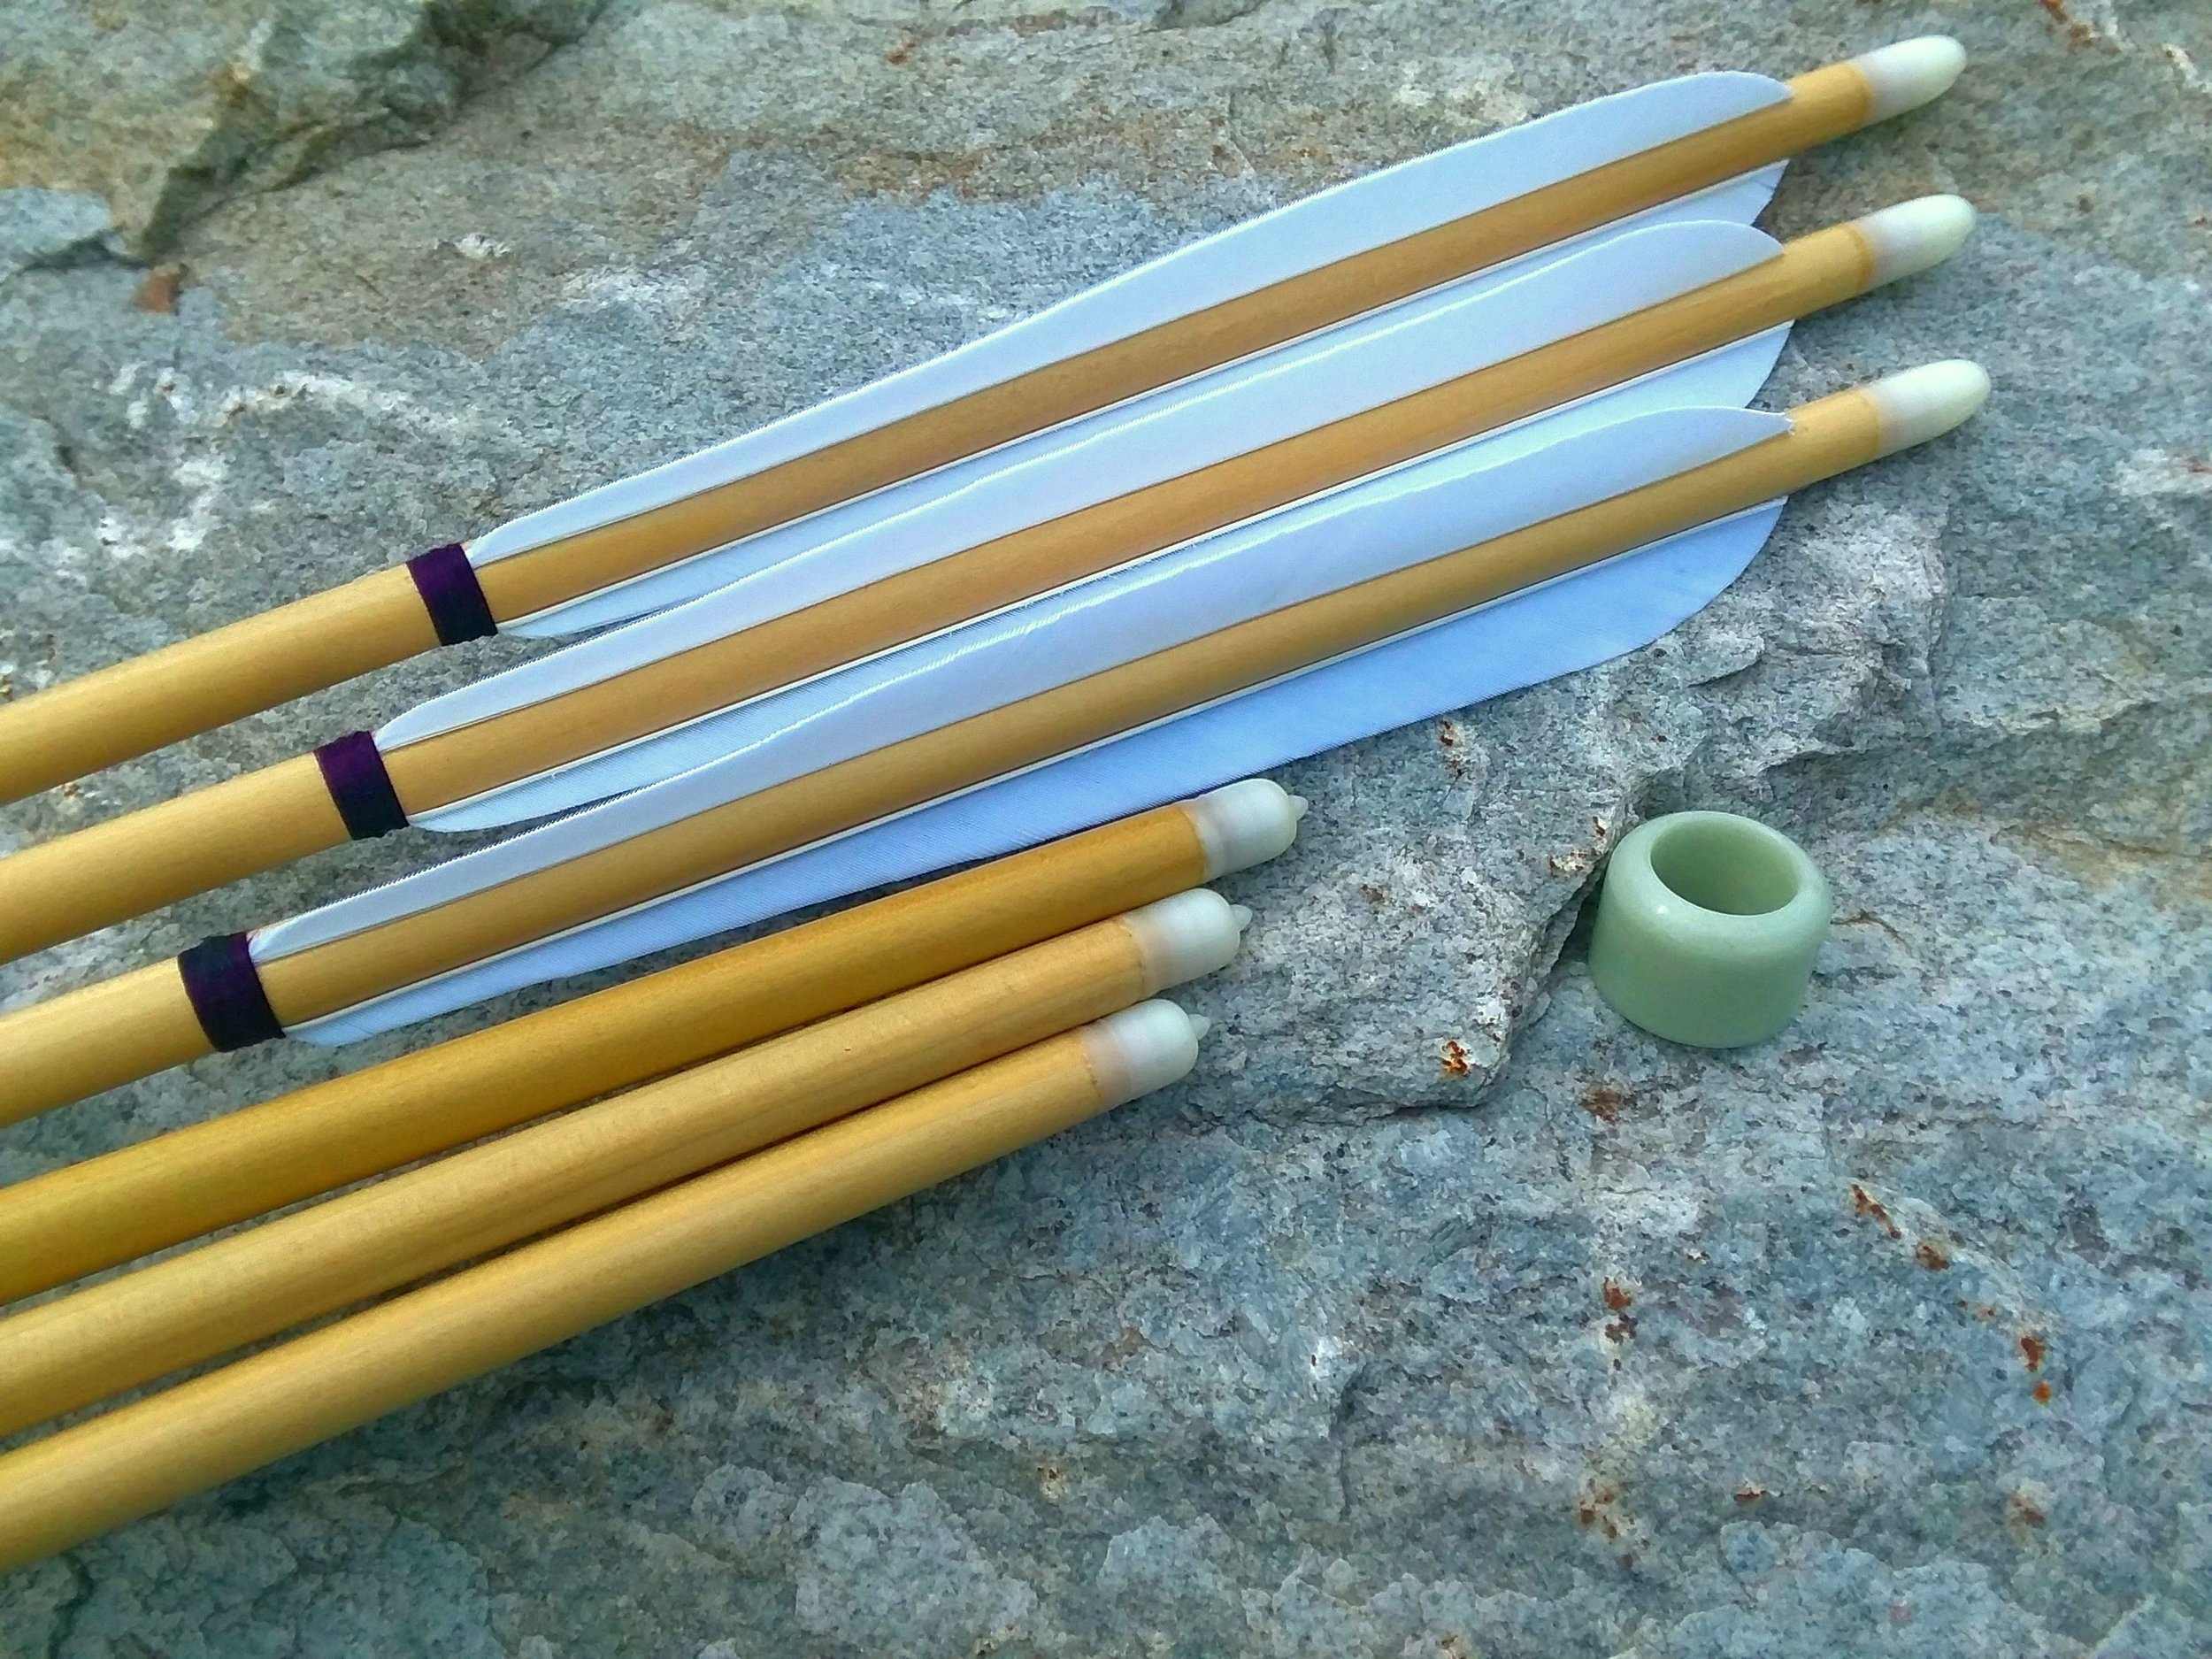 Our Manchu arrows seen here with our exotic Manchu ring, rather jade like in appearance.